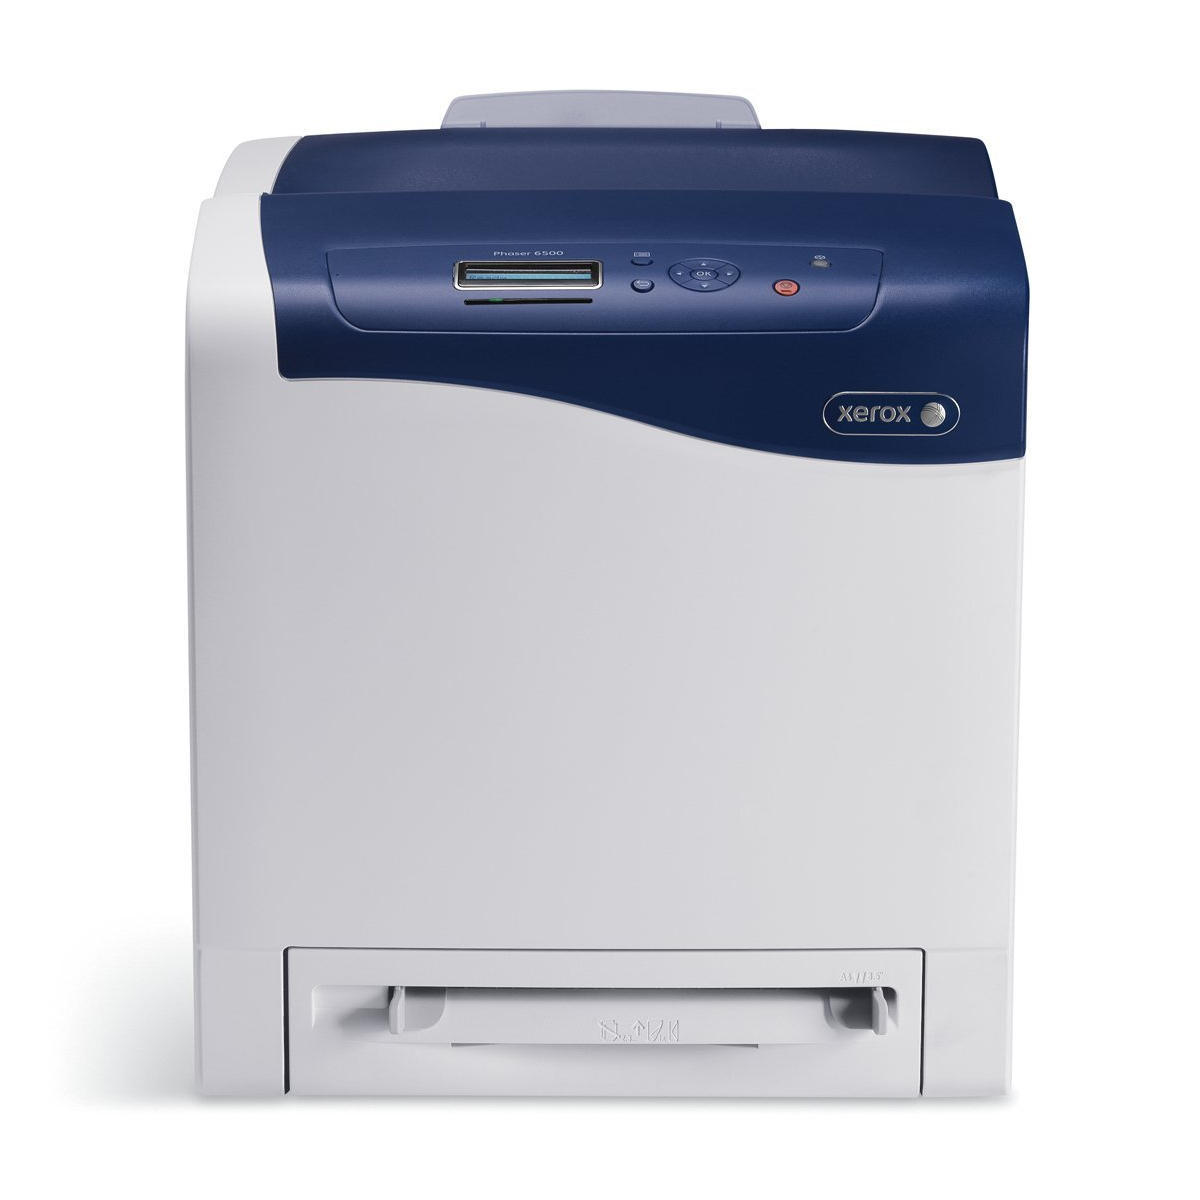 Xerox Phaser 6500/N Single Function Colour Laser Printer (Phaser 6500)